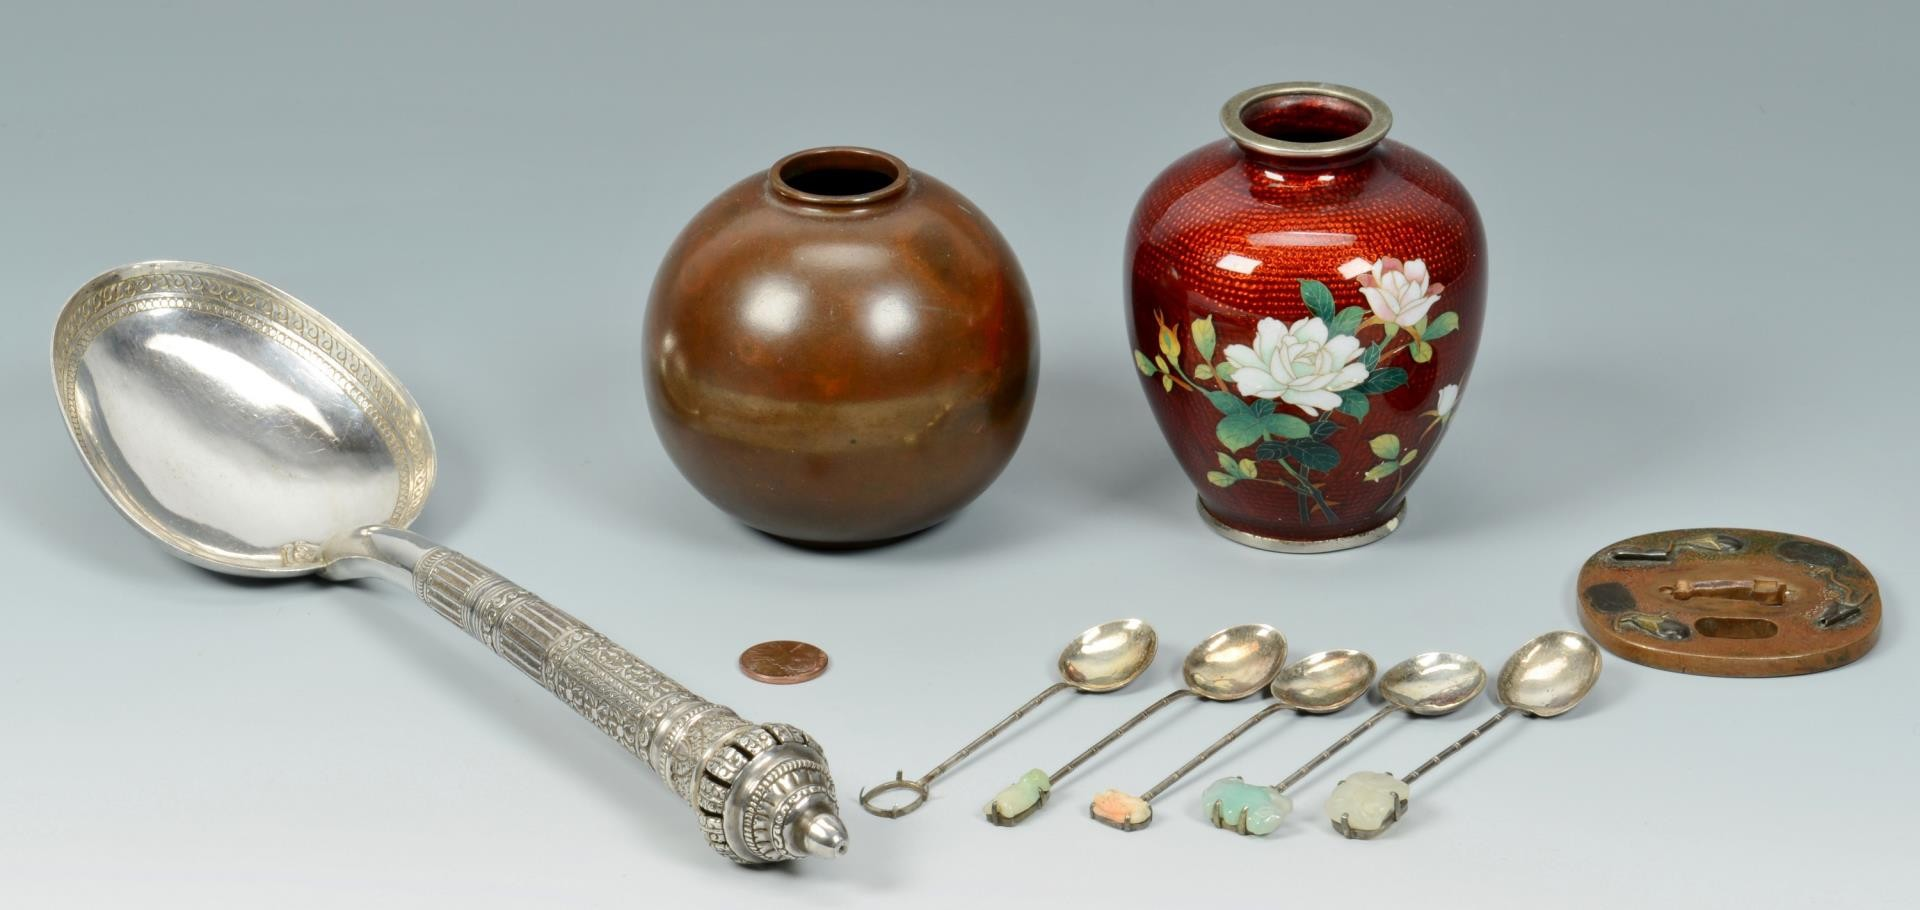 Lot 3383205: Grouping of 9 metal Asian items